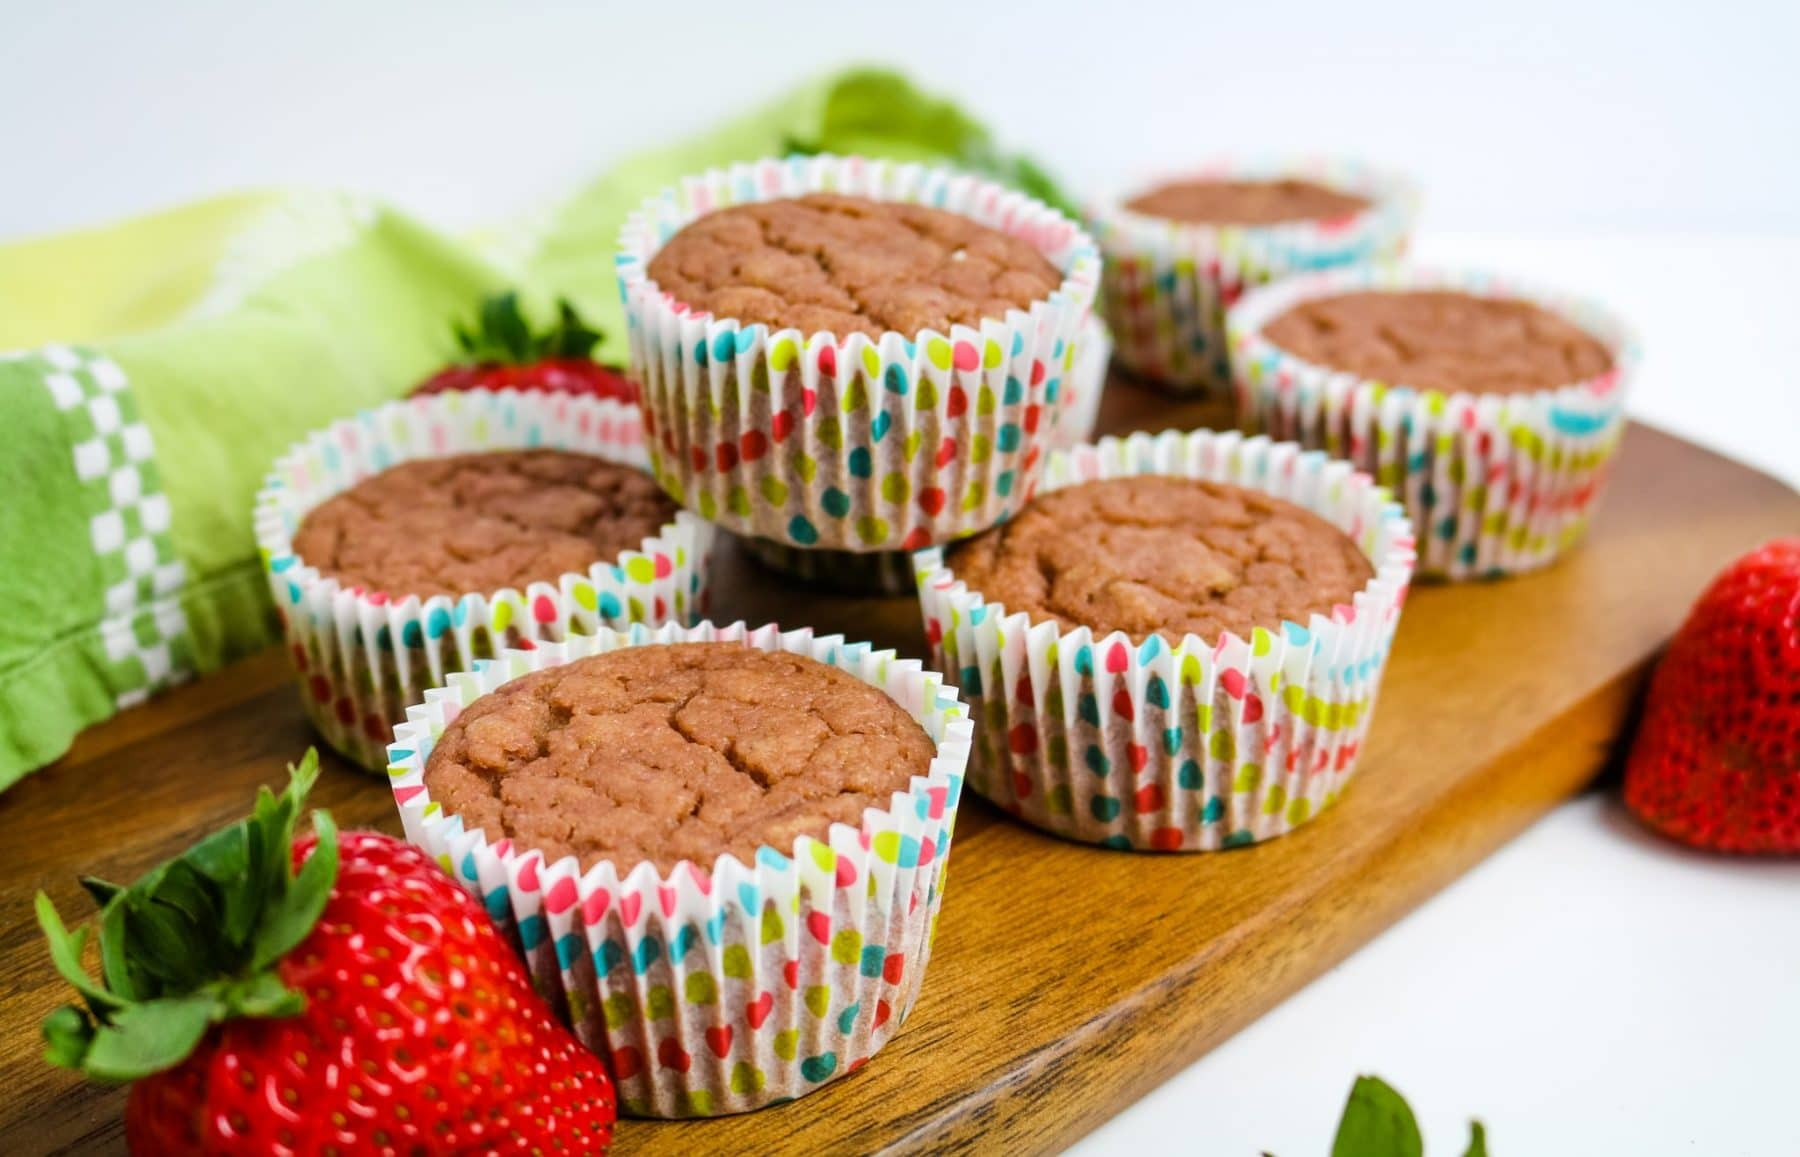 strawberry muffins arranged on a board